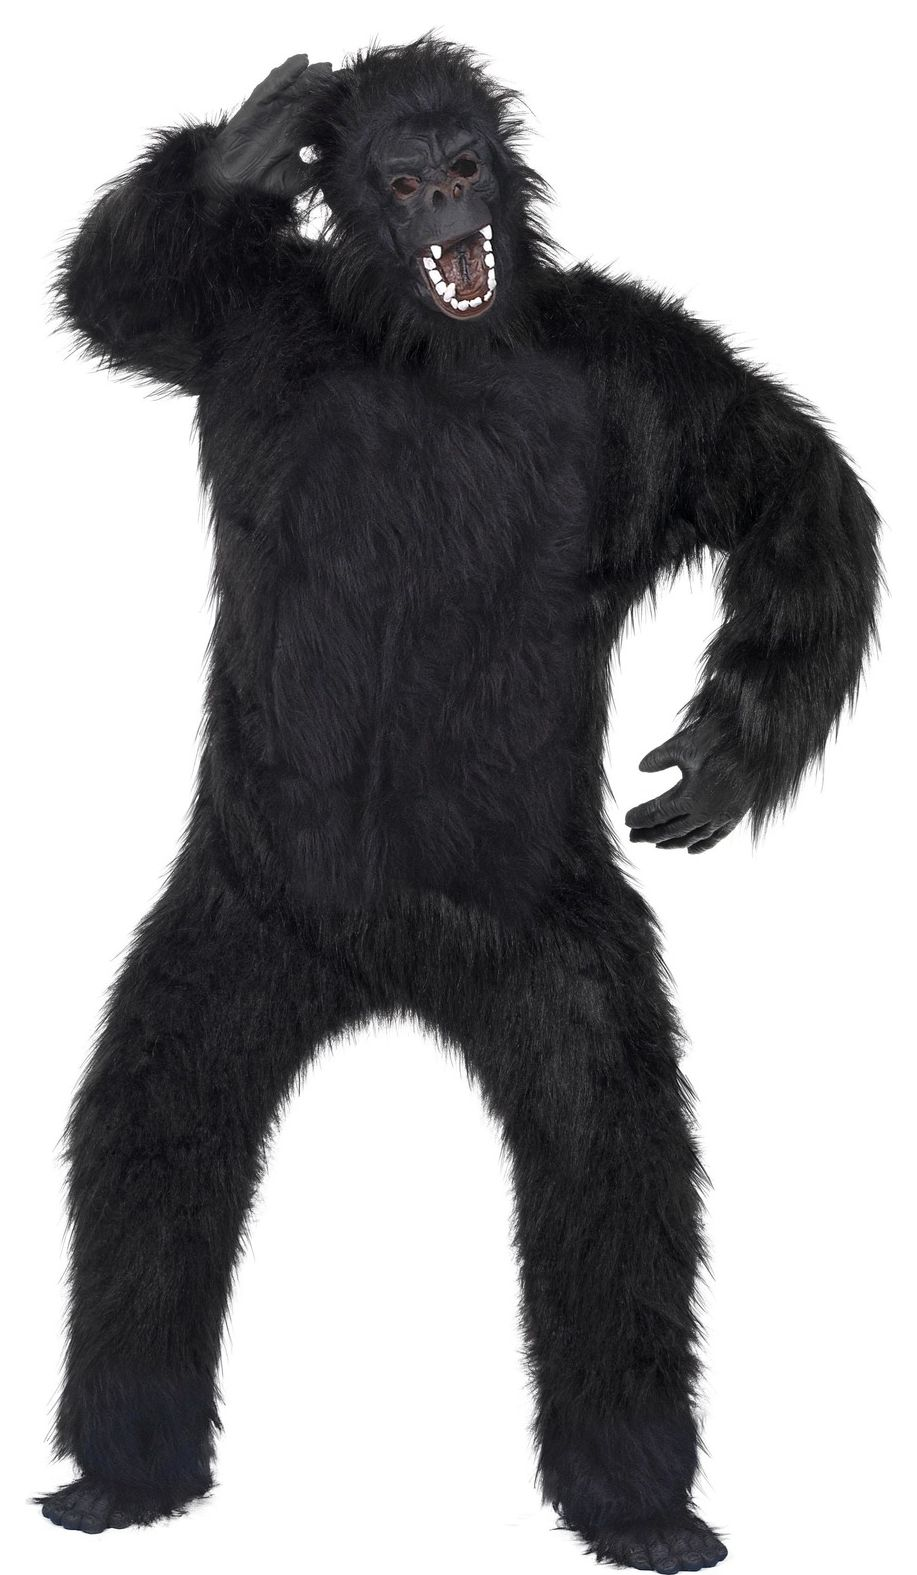 Gorilla outfit